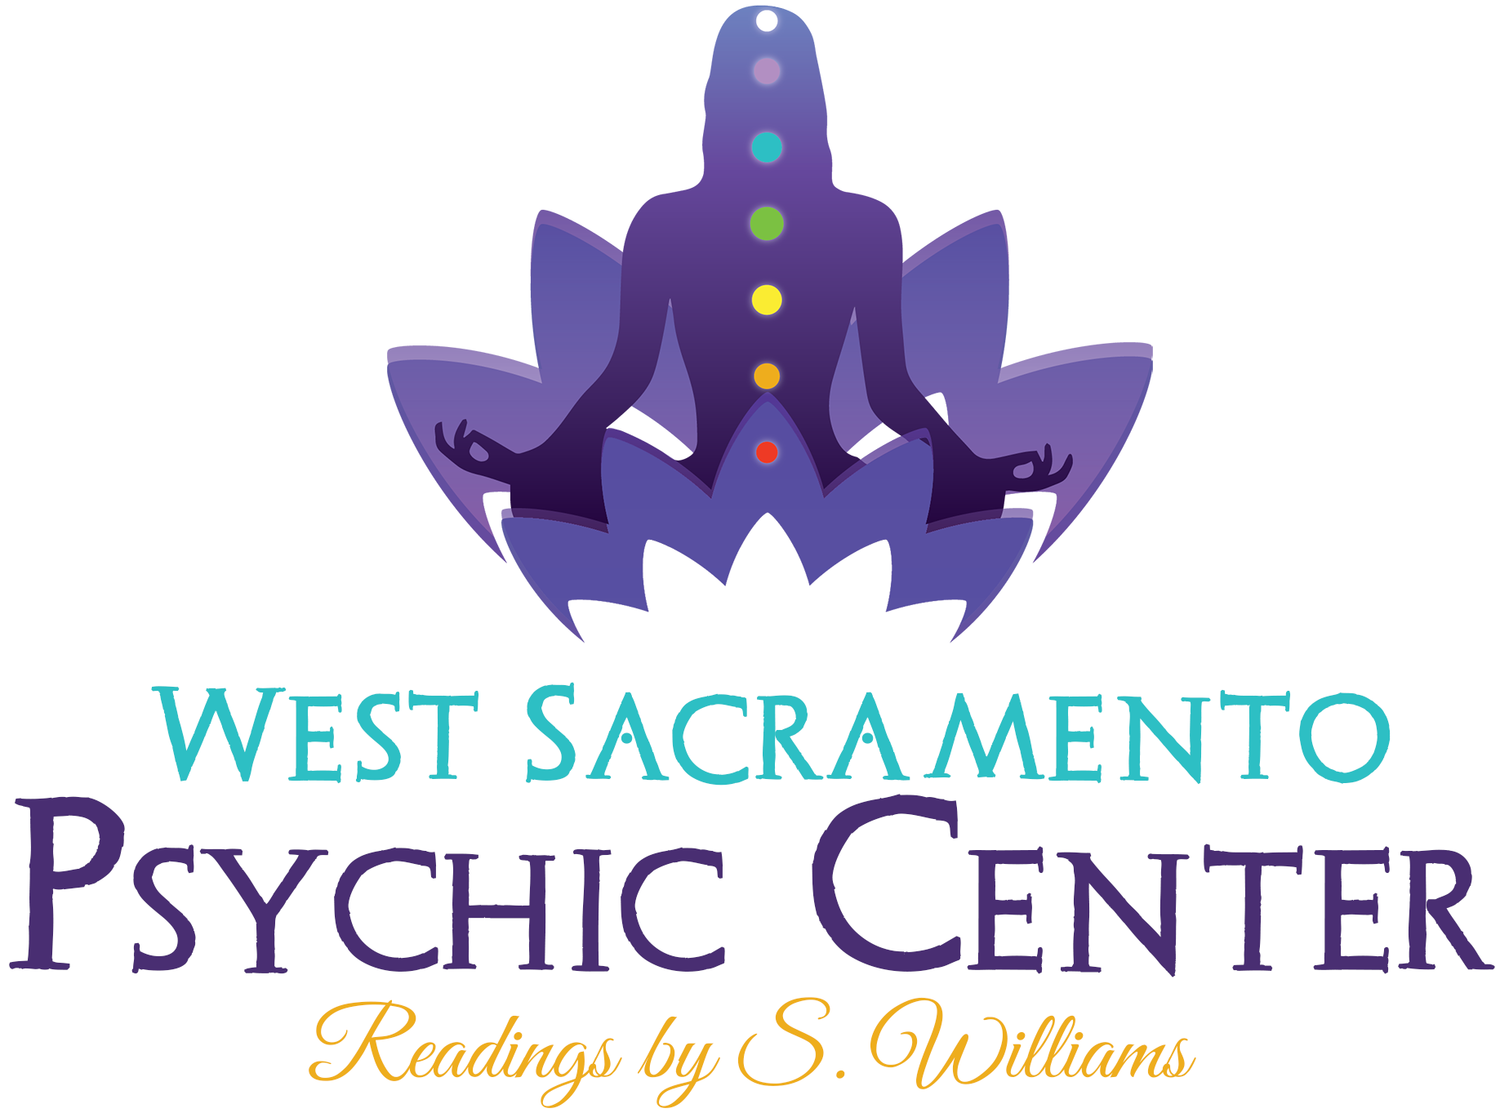 West Sacramento Psychic Center - Readings by S. Williams